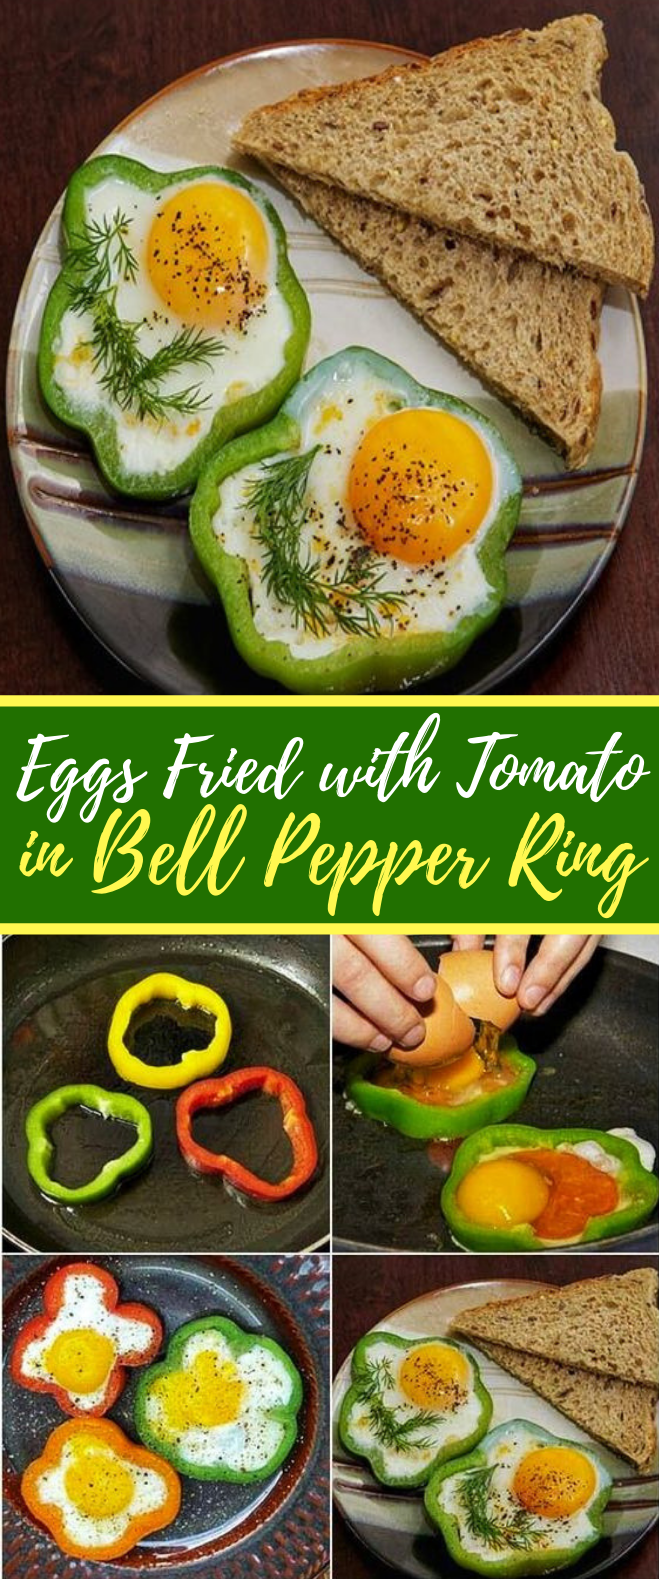 Eggs Fried with Tomato in Bell Pepper Ring #healthy #breakfast